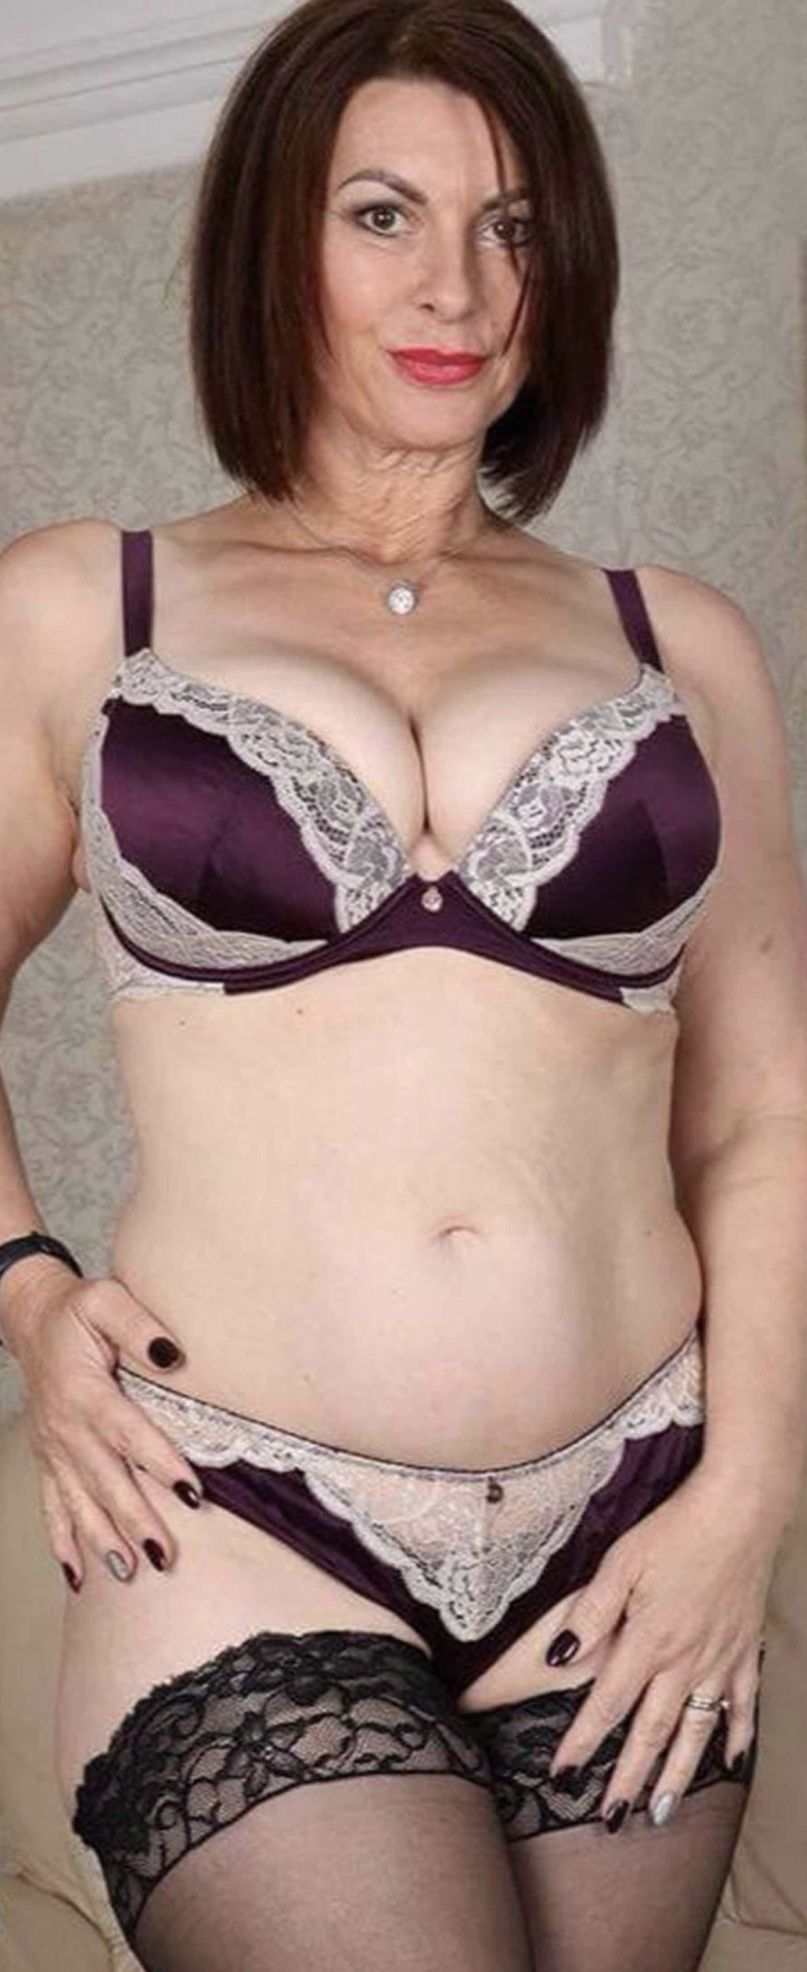 Pin on QKW: Mature and still beautifully hot